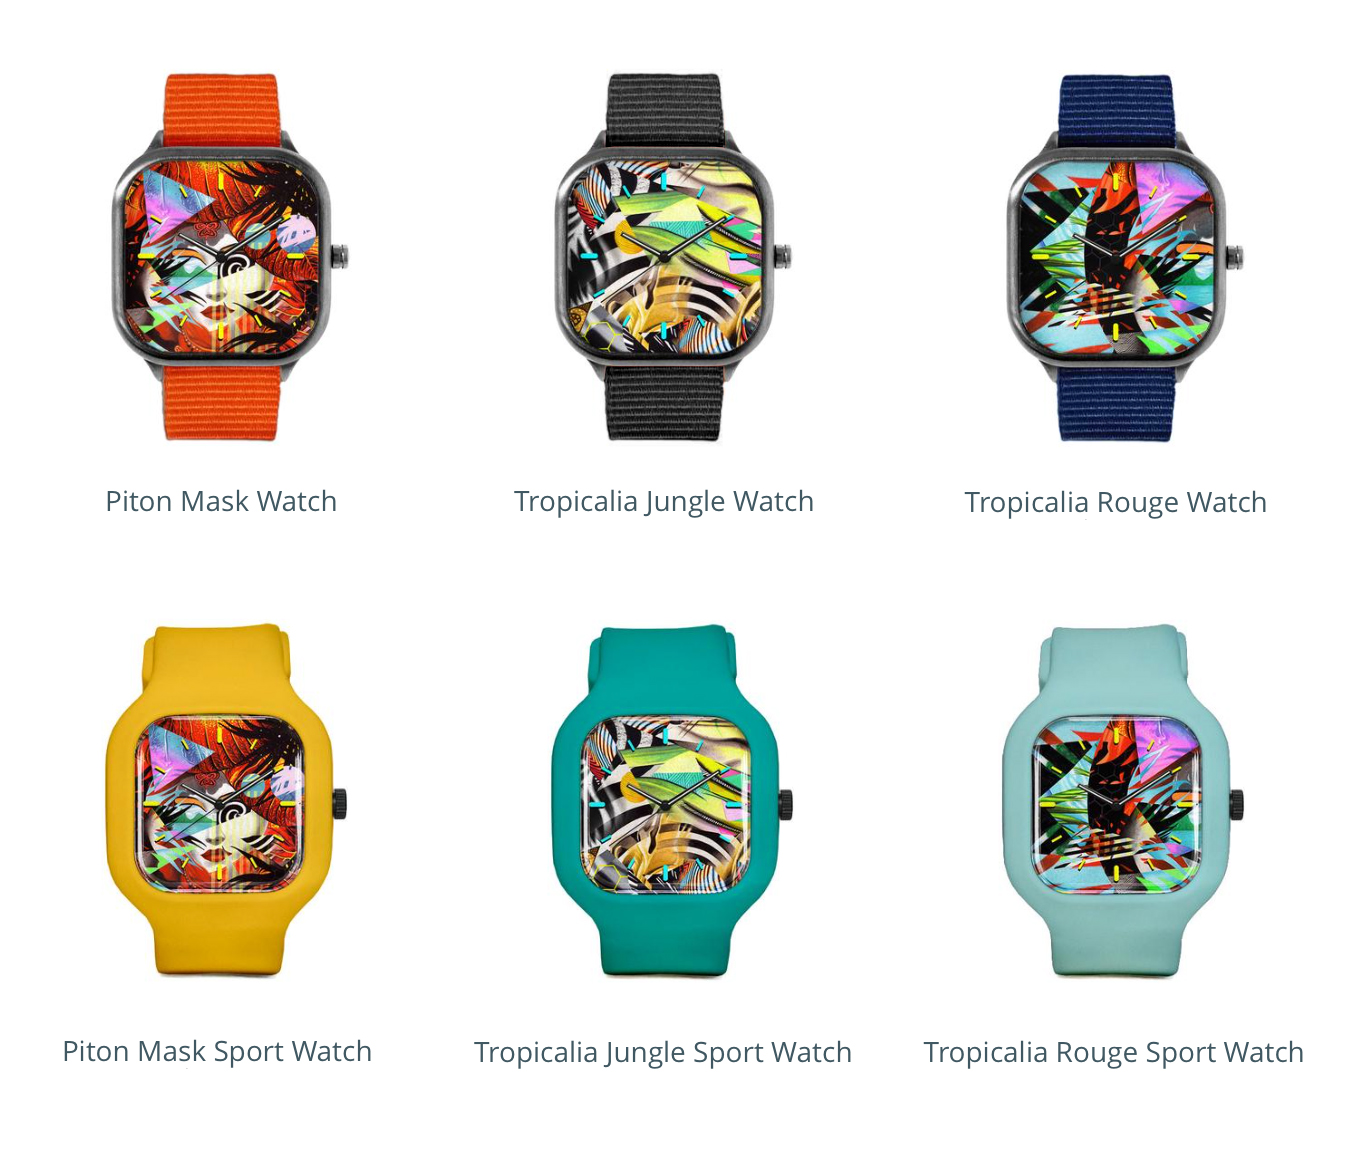 """Interactive design: Mix & match any design w/ up to 16 interchangeable strap colors. All custom designs are available in either a lightweight water-resistant """"Sport"""" model, or stainless steel """"Leisure"""" model. These watches are proudly hand-assembled in San Francisco.  View full collection"""